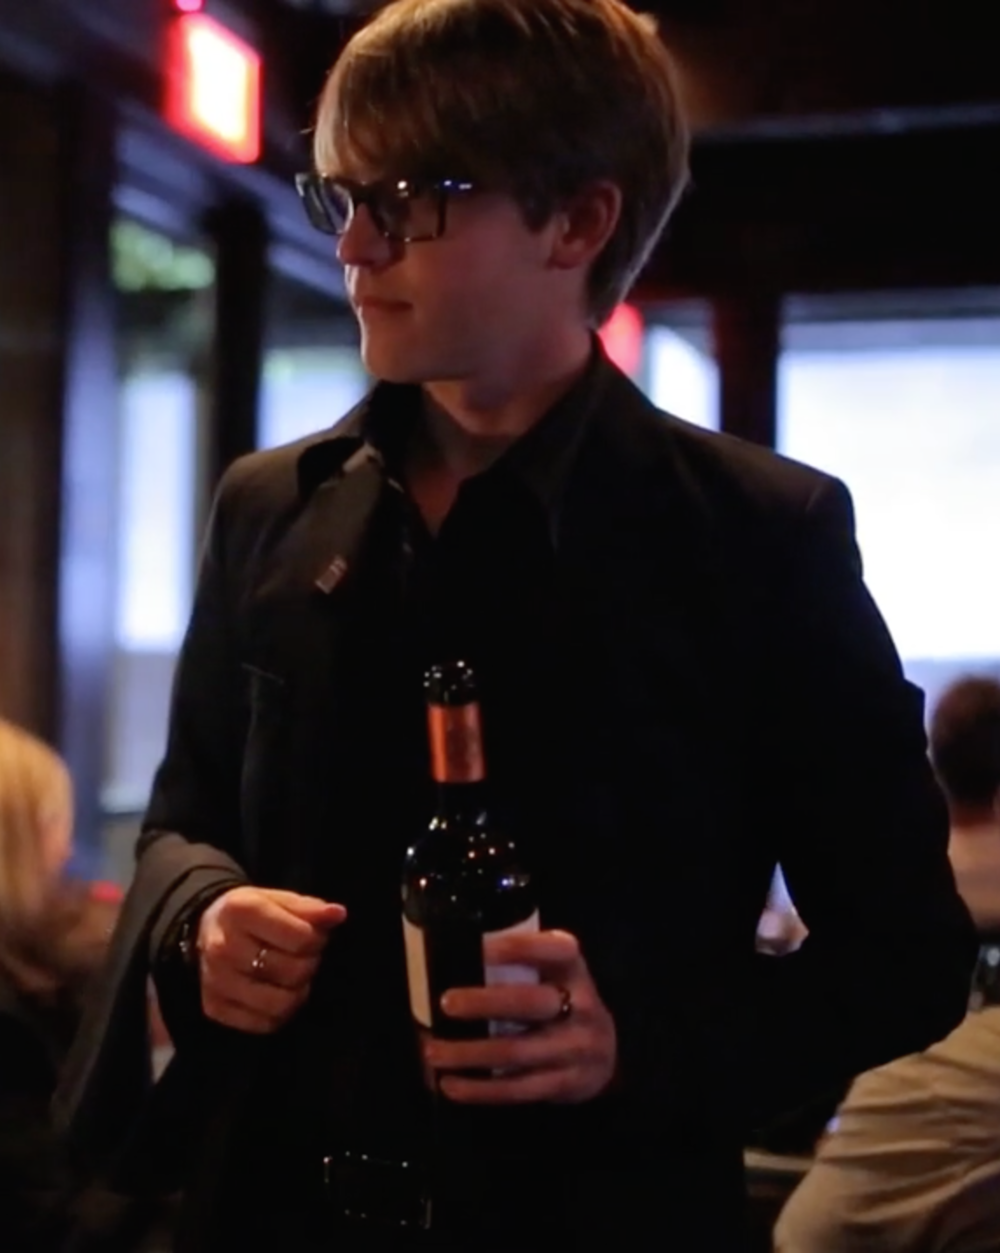 San Francisco Wine Specialist for Hire